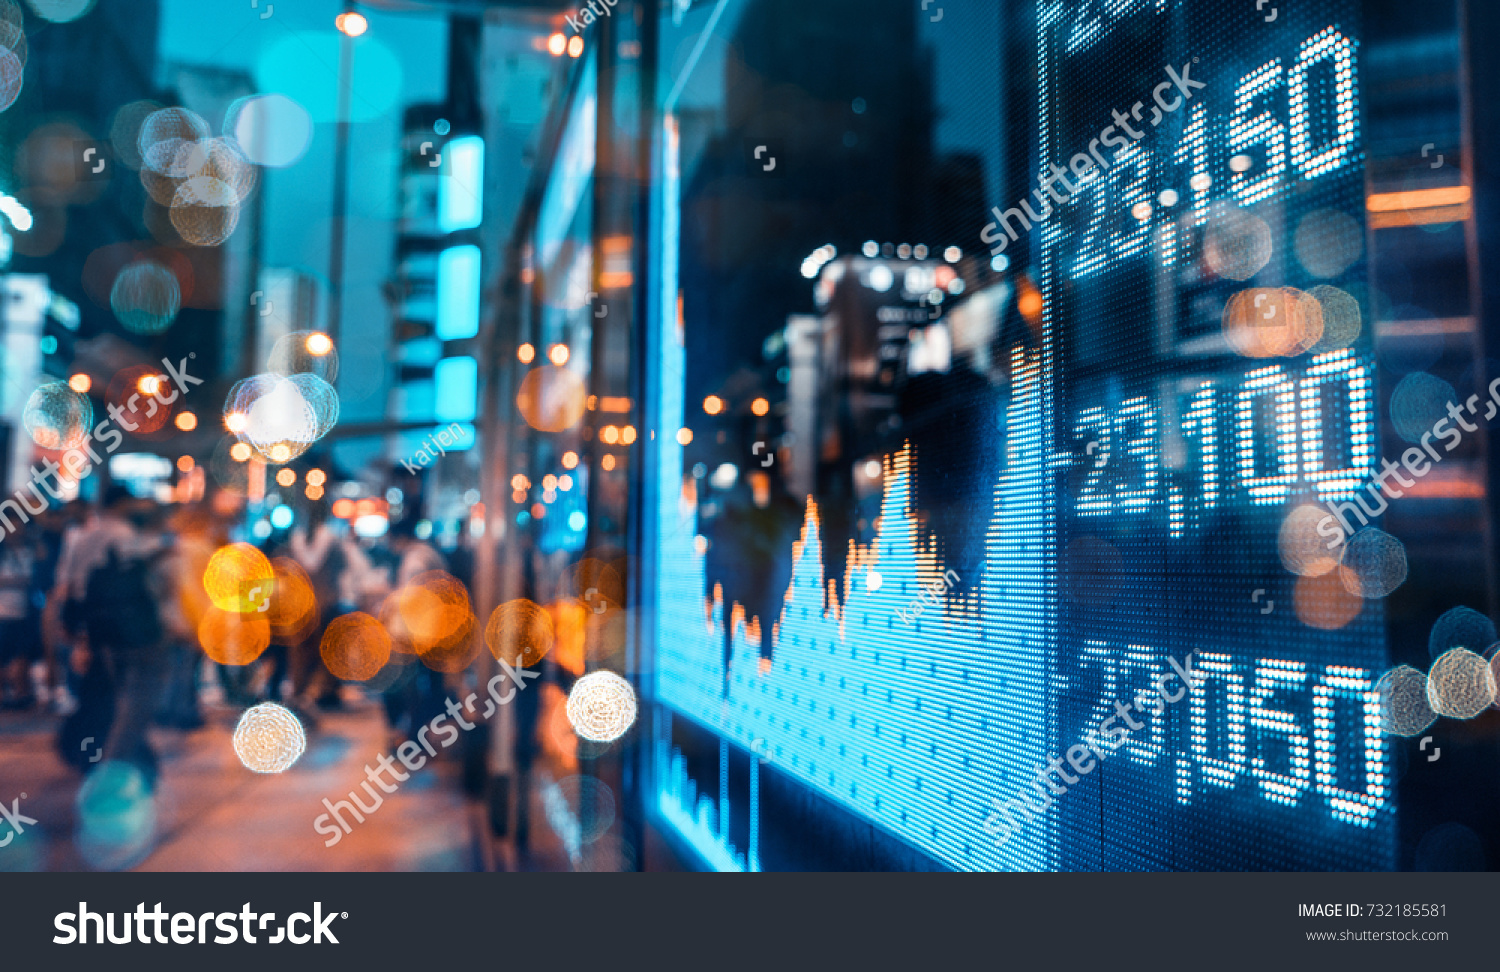 Display of Stock market quotes with city scene reflect on glass #732185581